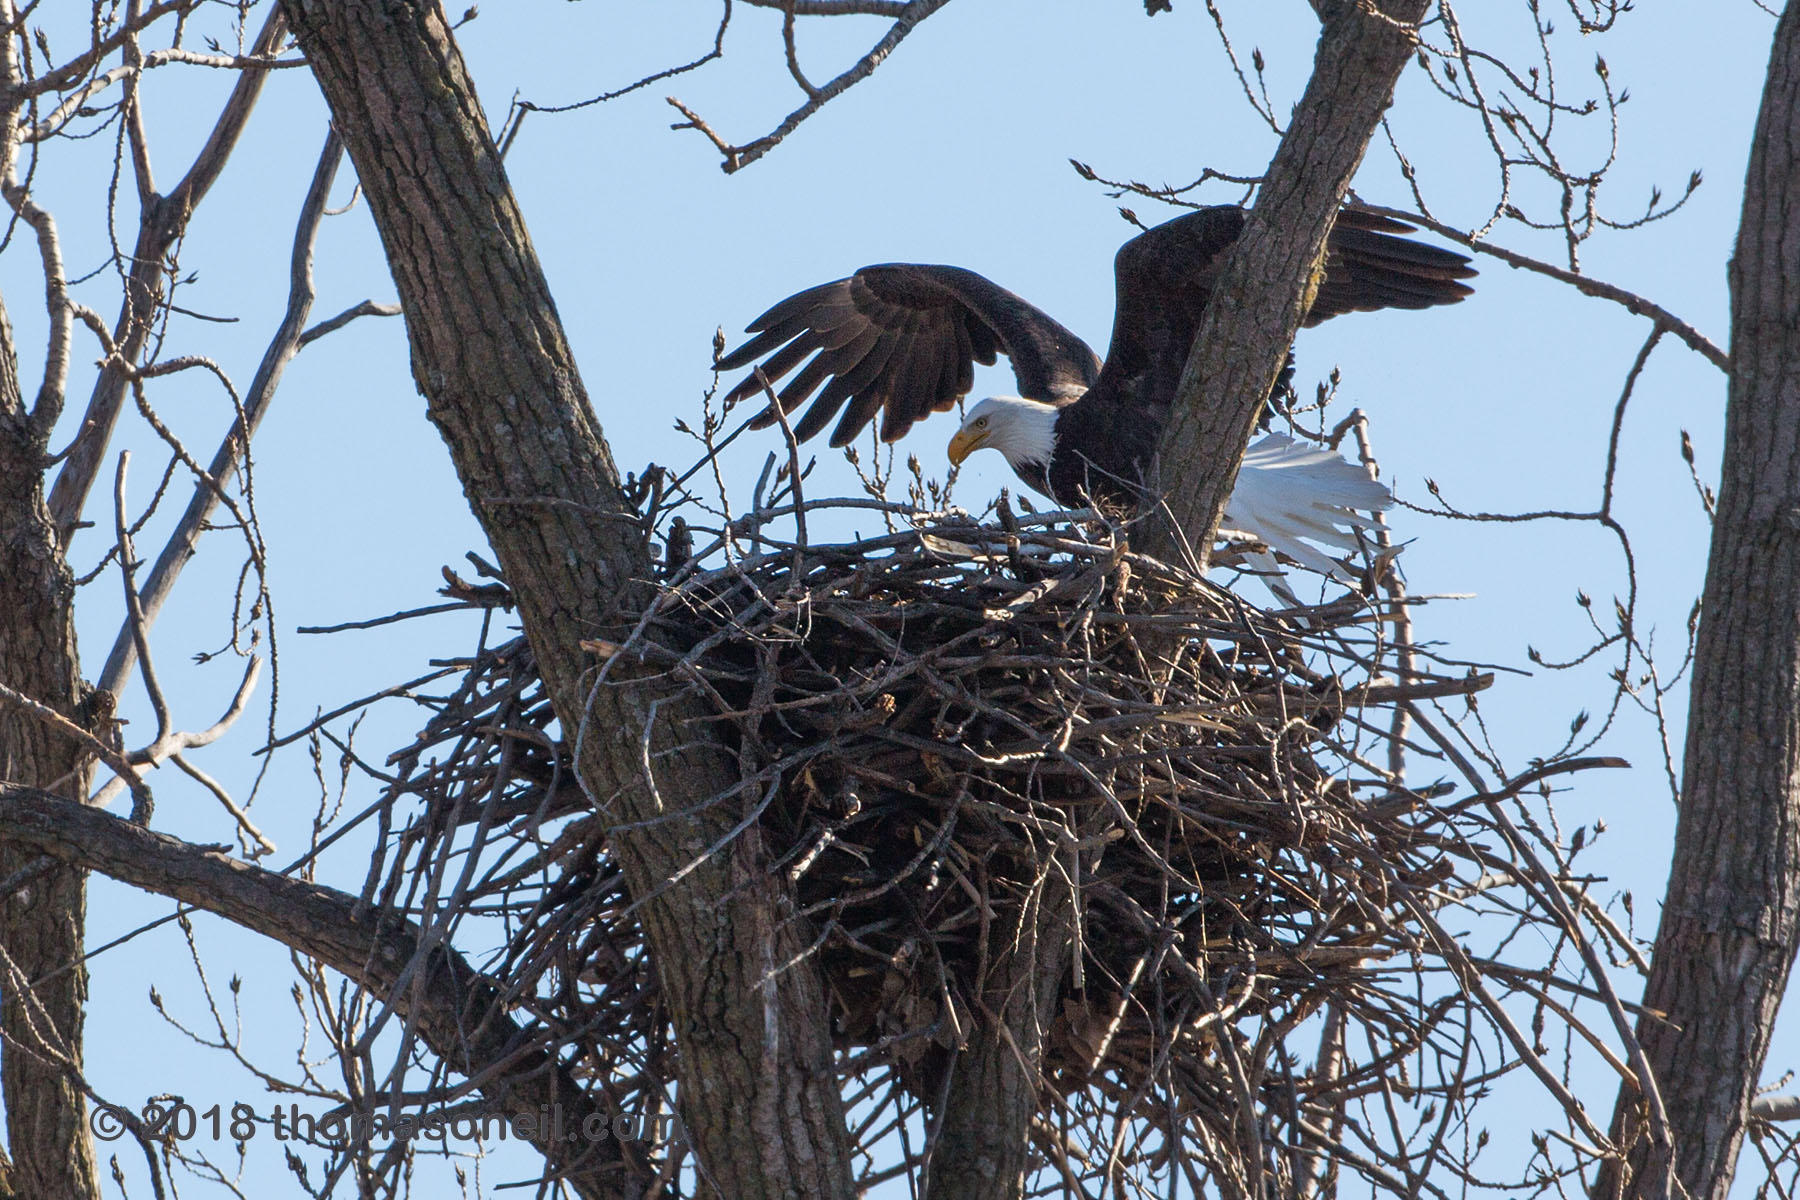 Bald eagle lands in the nest, Loess Bluffs National Wildlife Refuge, Missouri, December 2018.  Click for next photo.